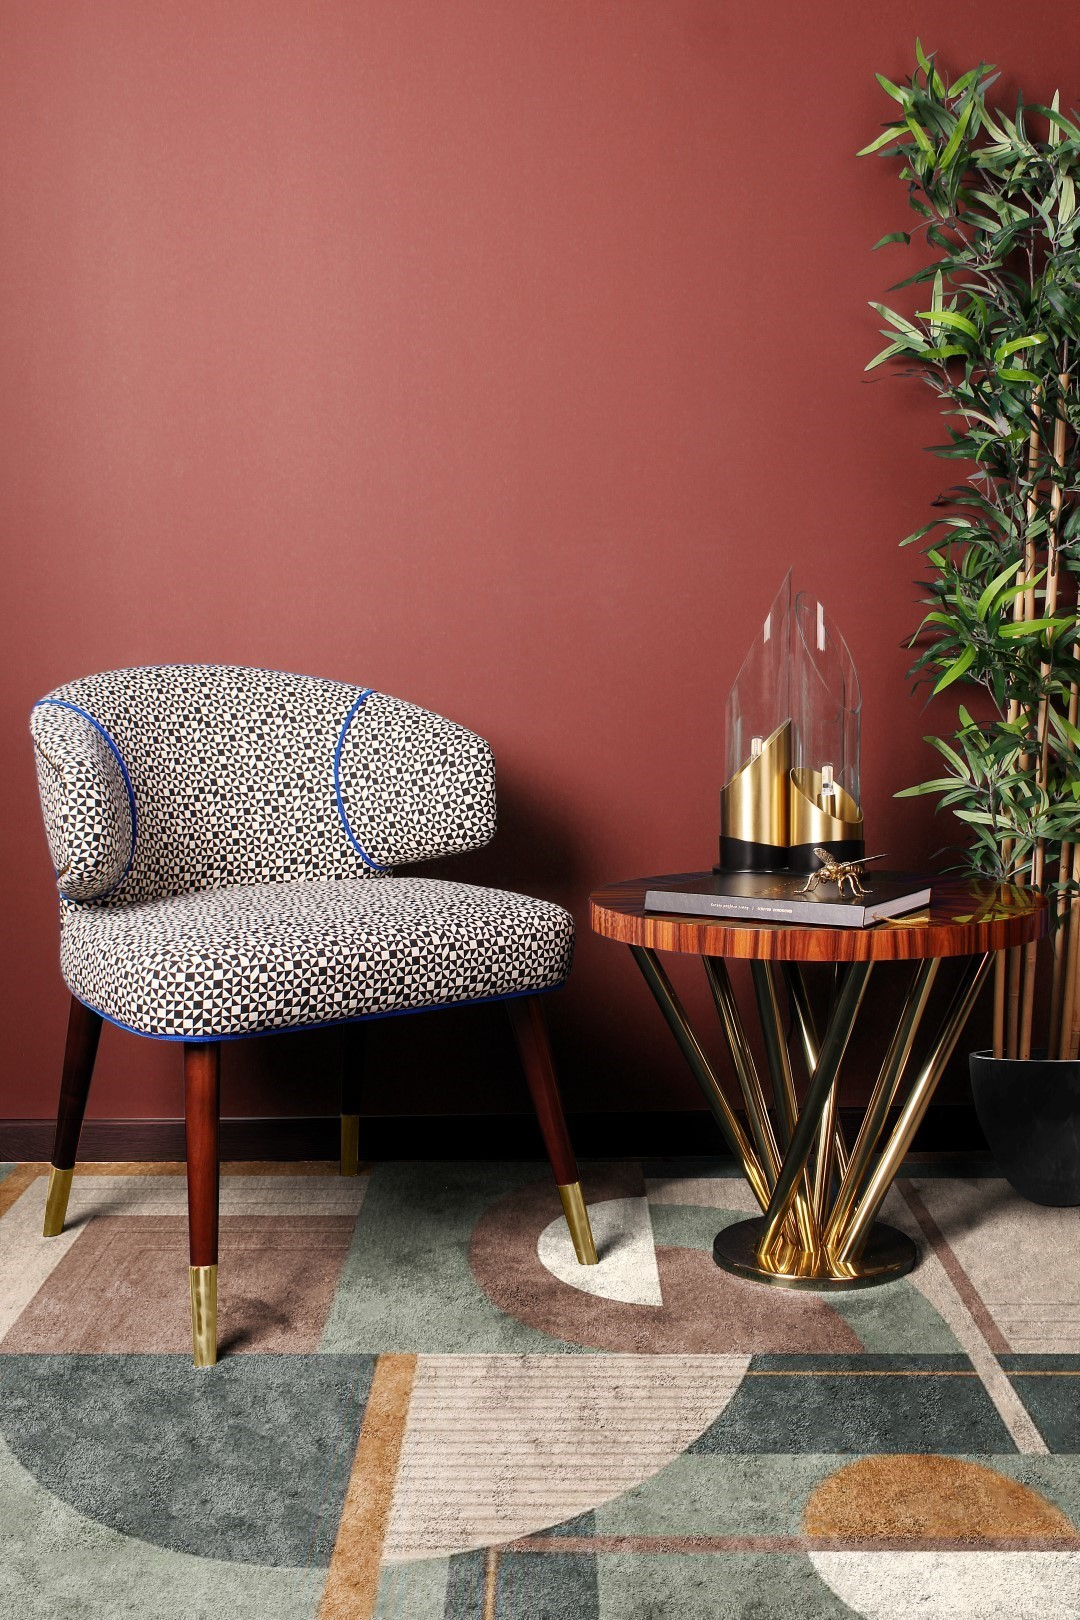 Ottiu's Tippi Dining Chair, Nebula side table by Malabar and Creativemary's Bamboo Table Lamp